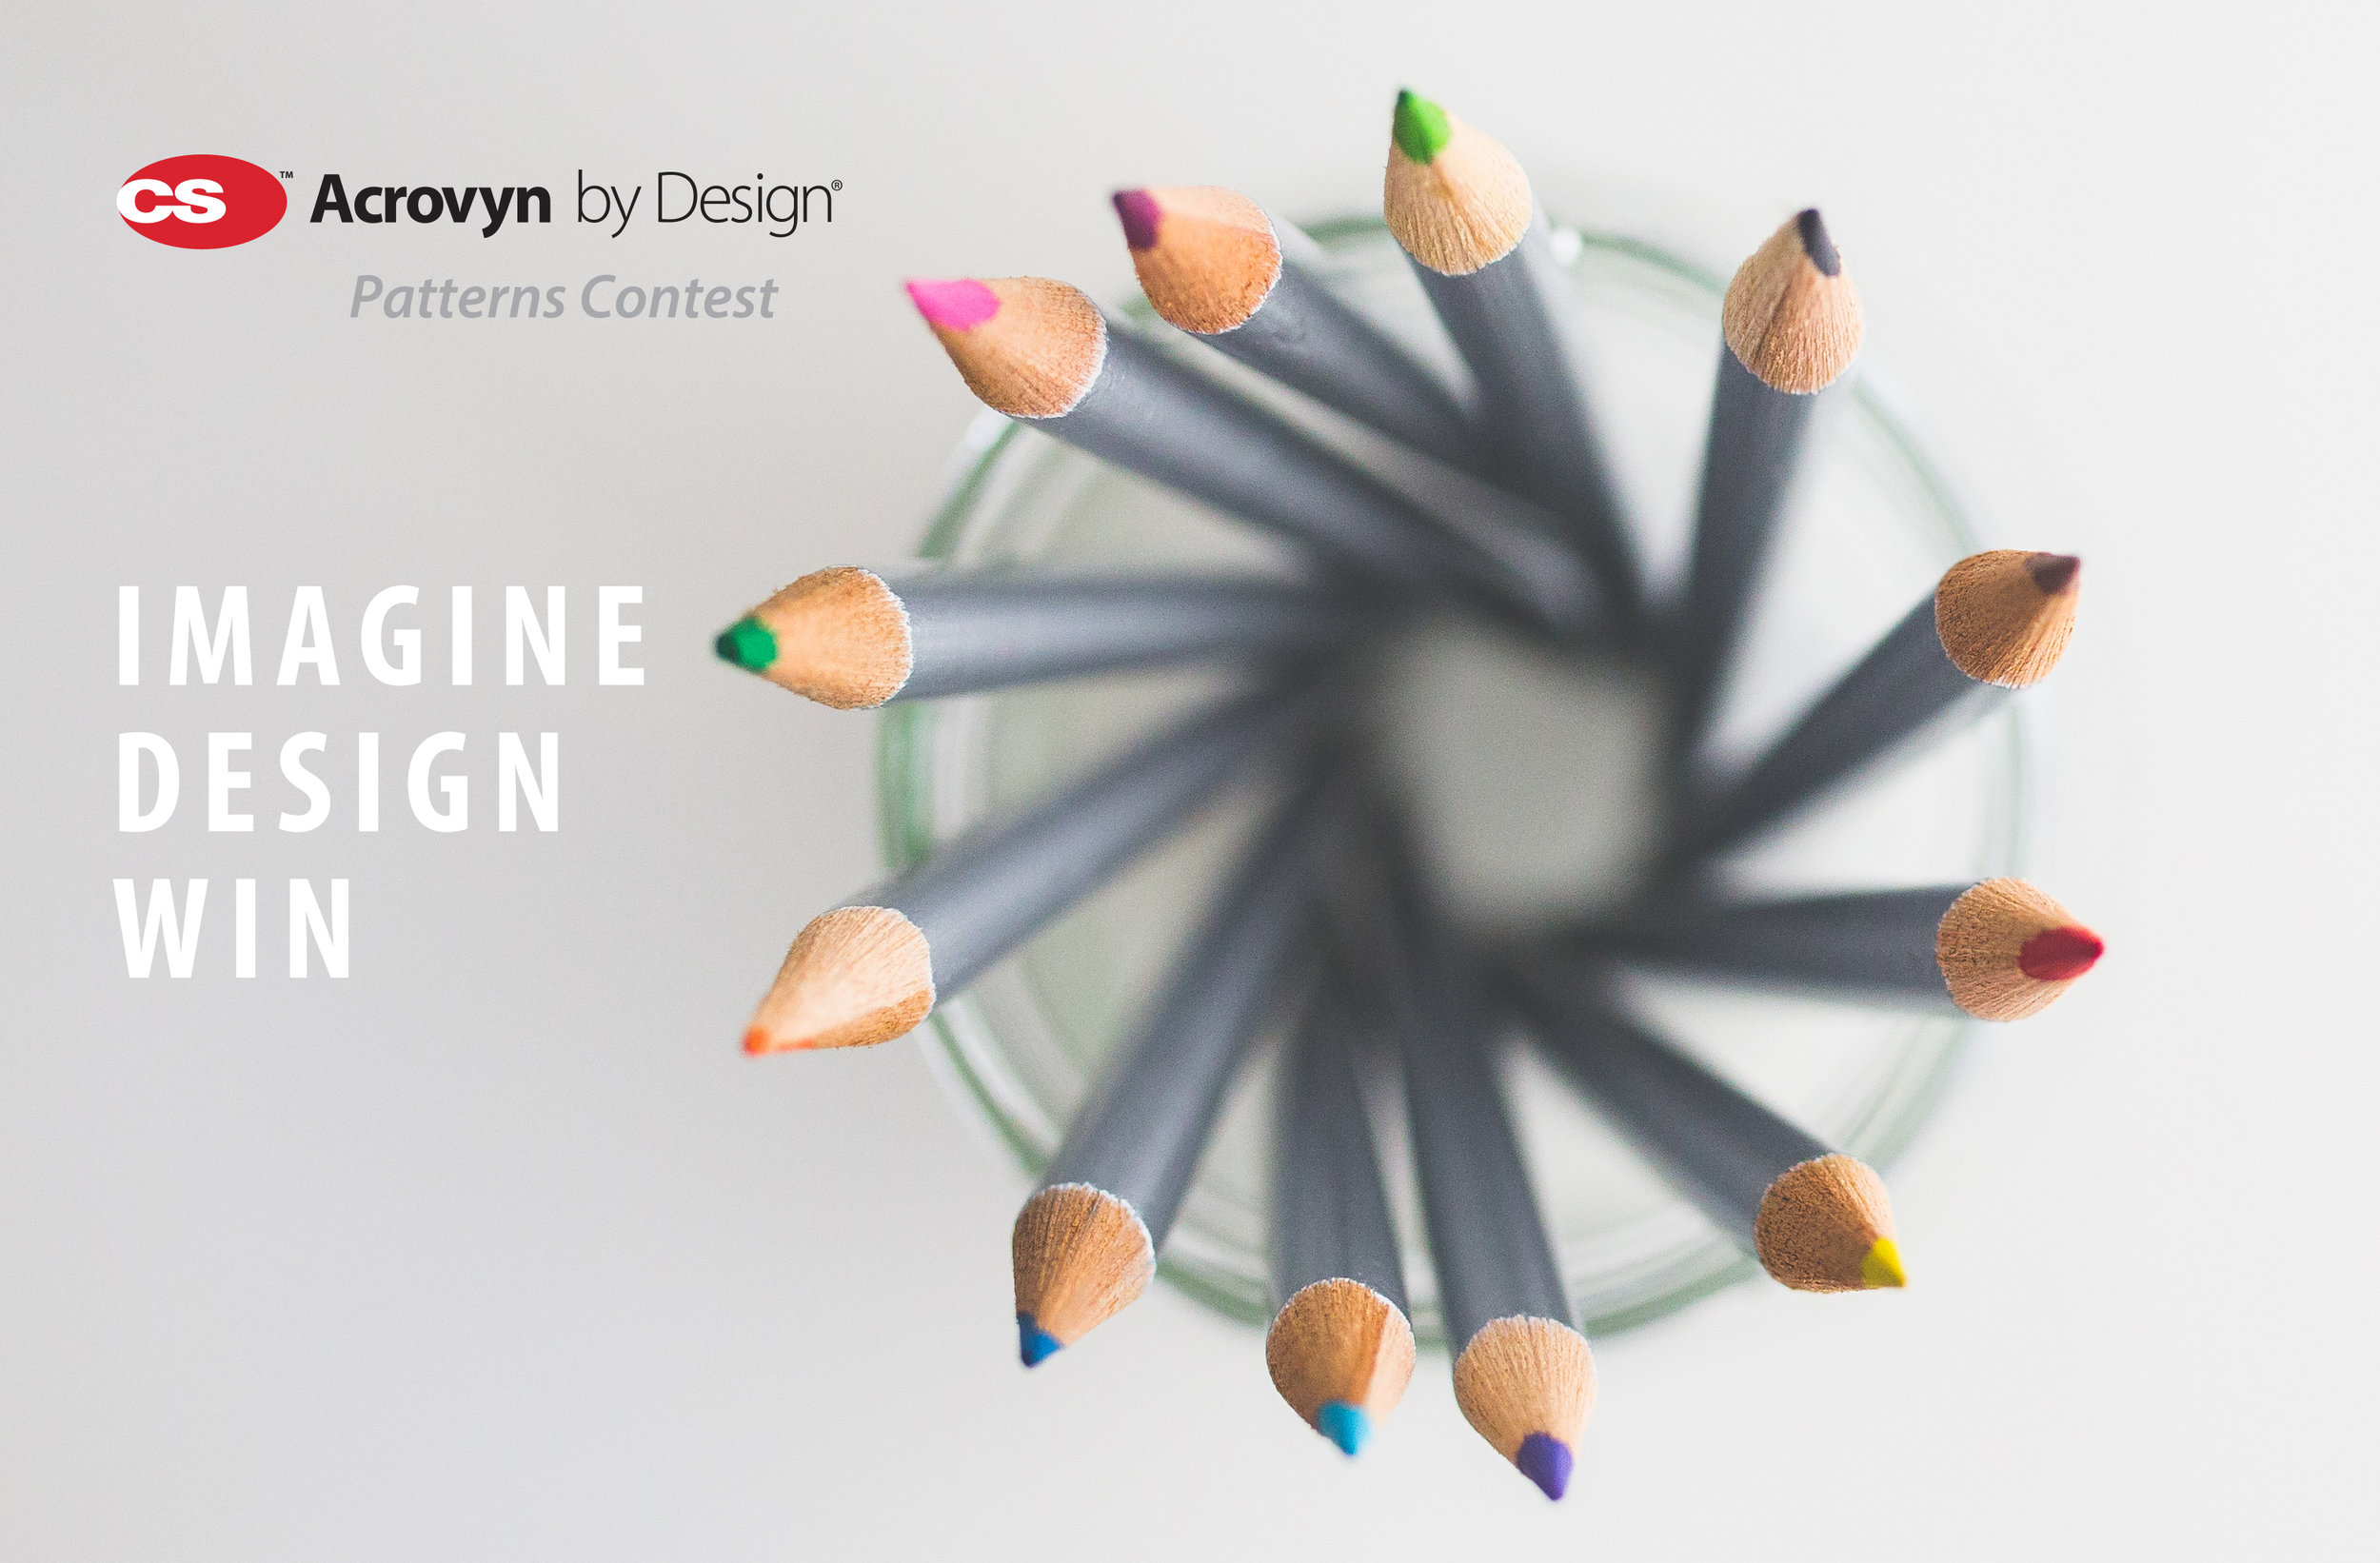 The official Acrovyn by Design Patterns Contest Banner. Photo provided by Pexels.